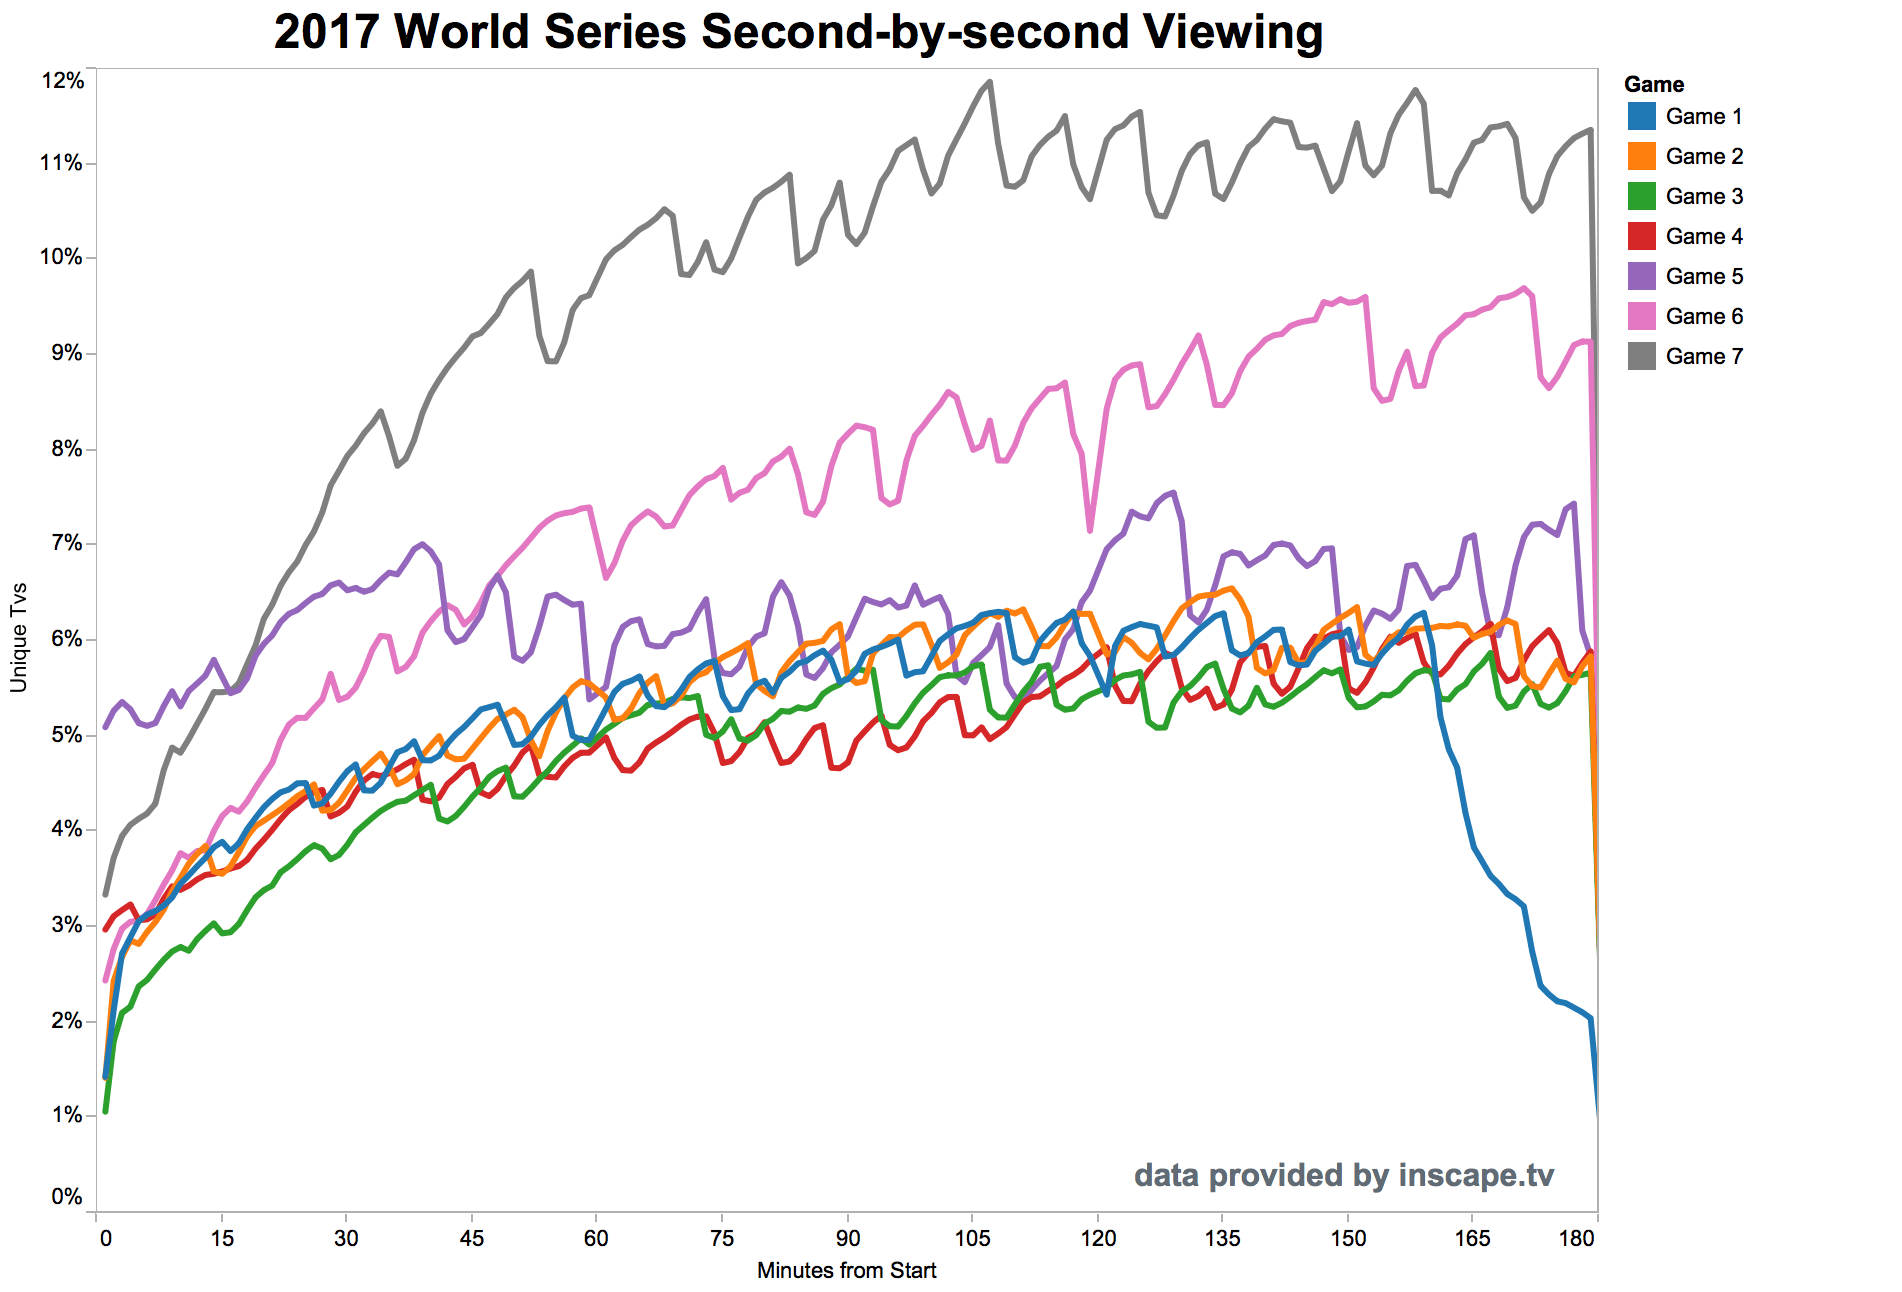 2017 World Series Baseball second by second viewership data